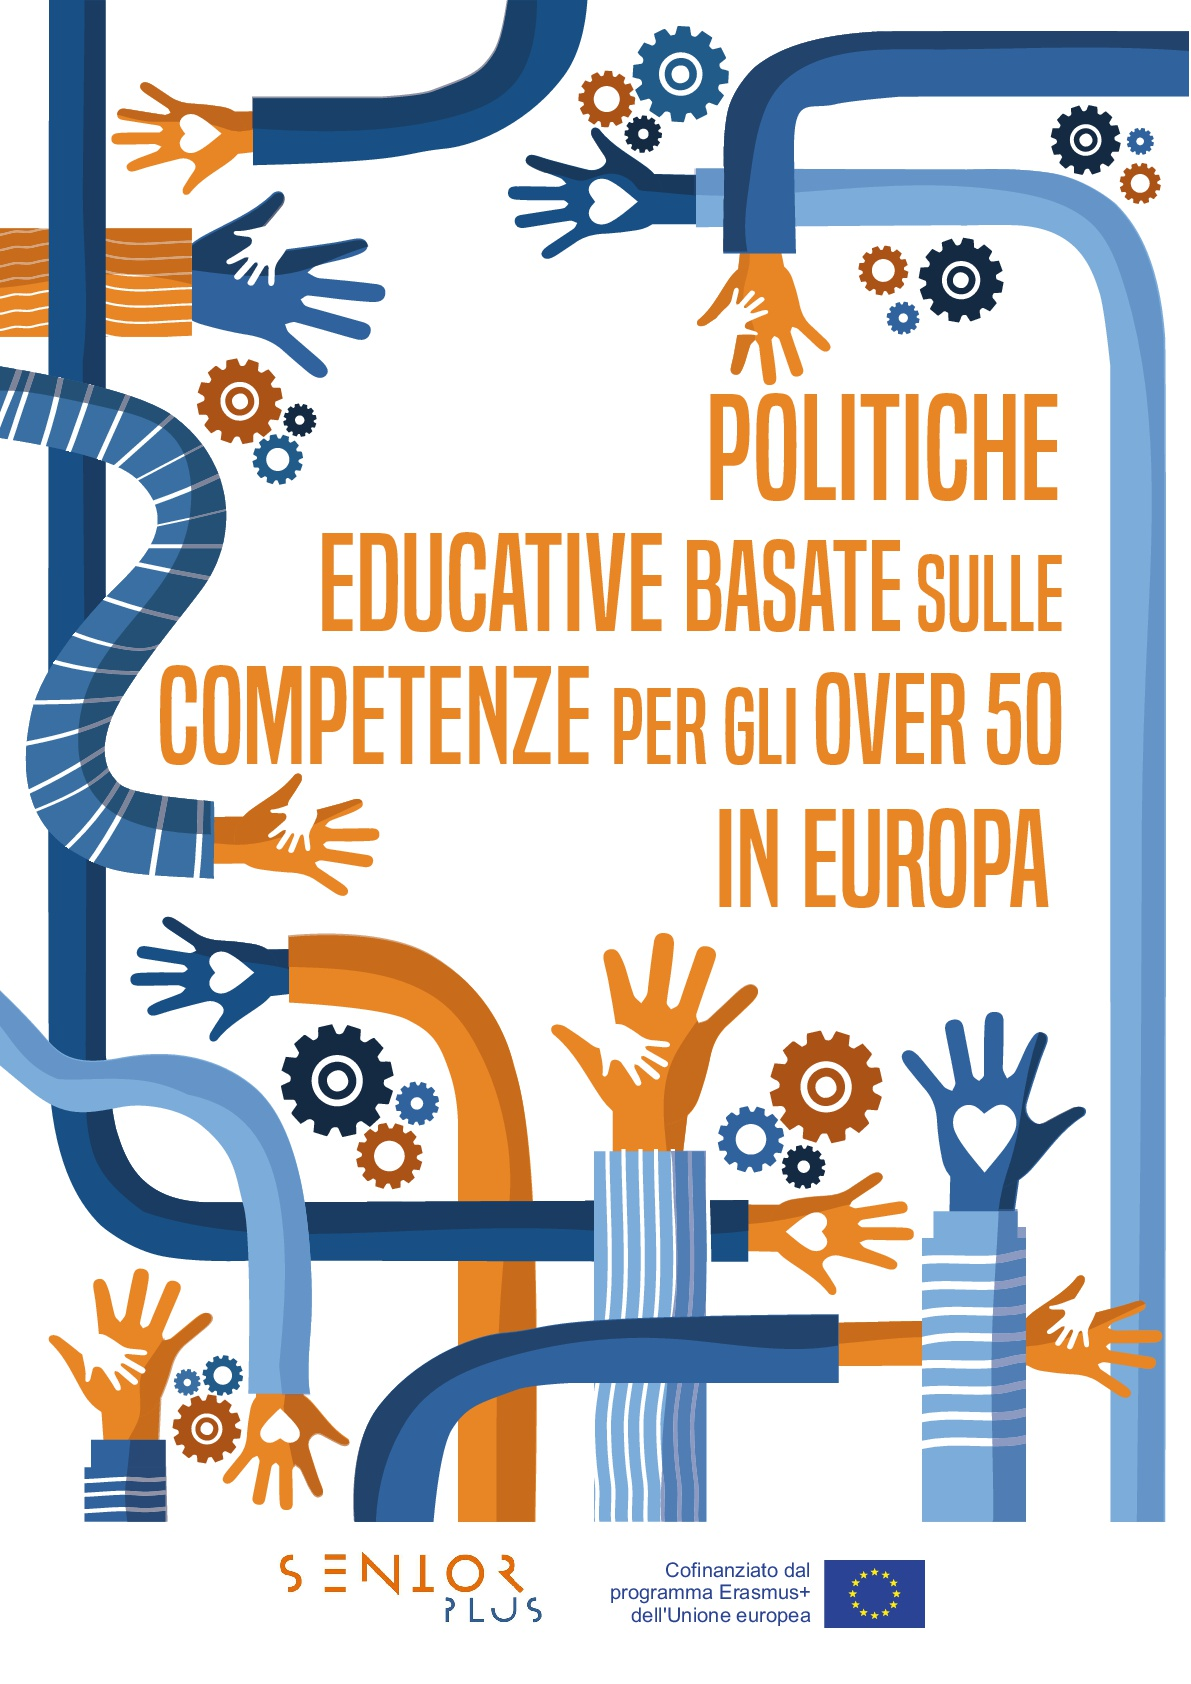 (IT) Education Policies and Competence based learning for over 50s in Europe